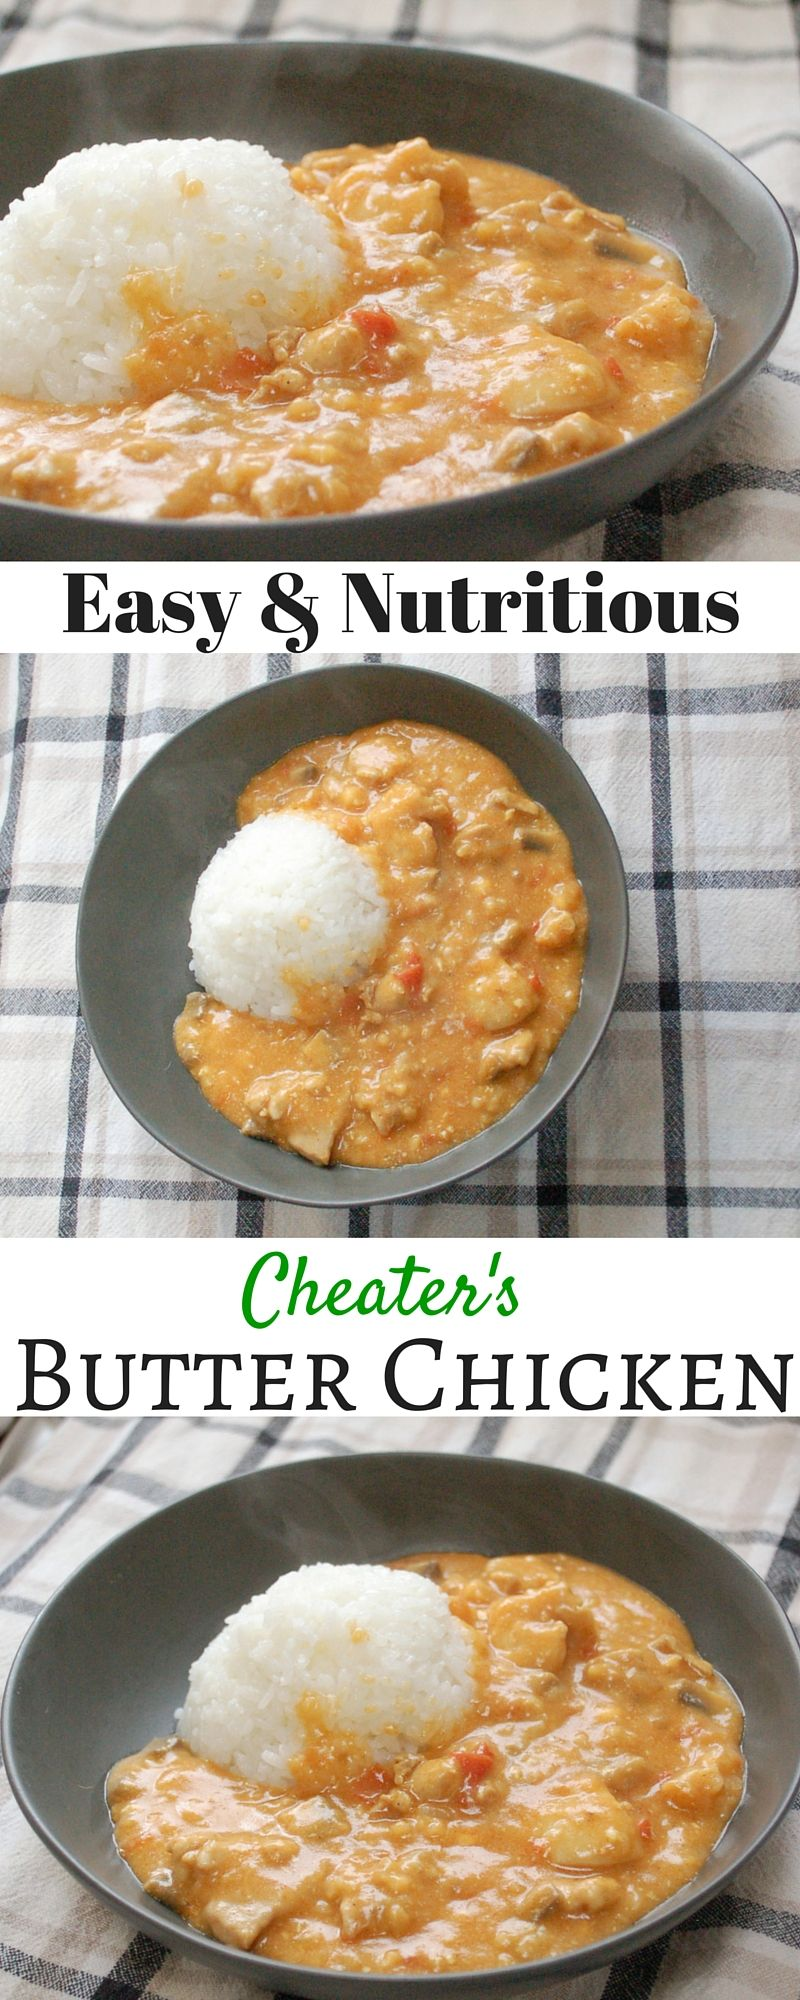 Cheater S Butter Chicken Recipe Butter Chicken Baby Food Recipes Food Recipes